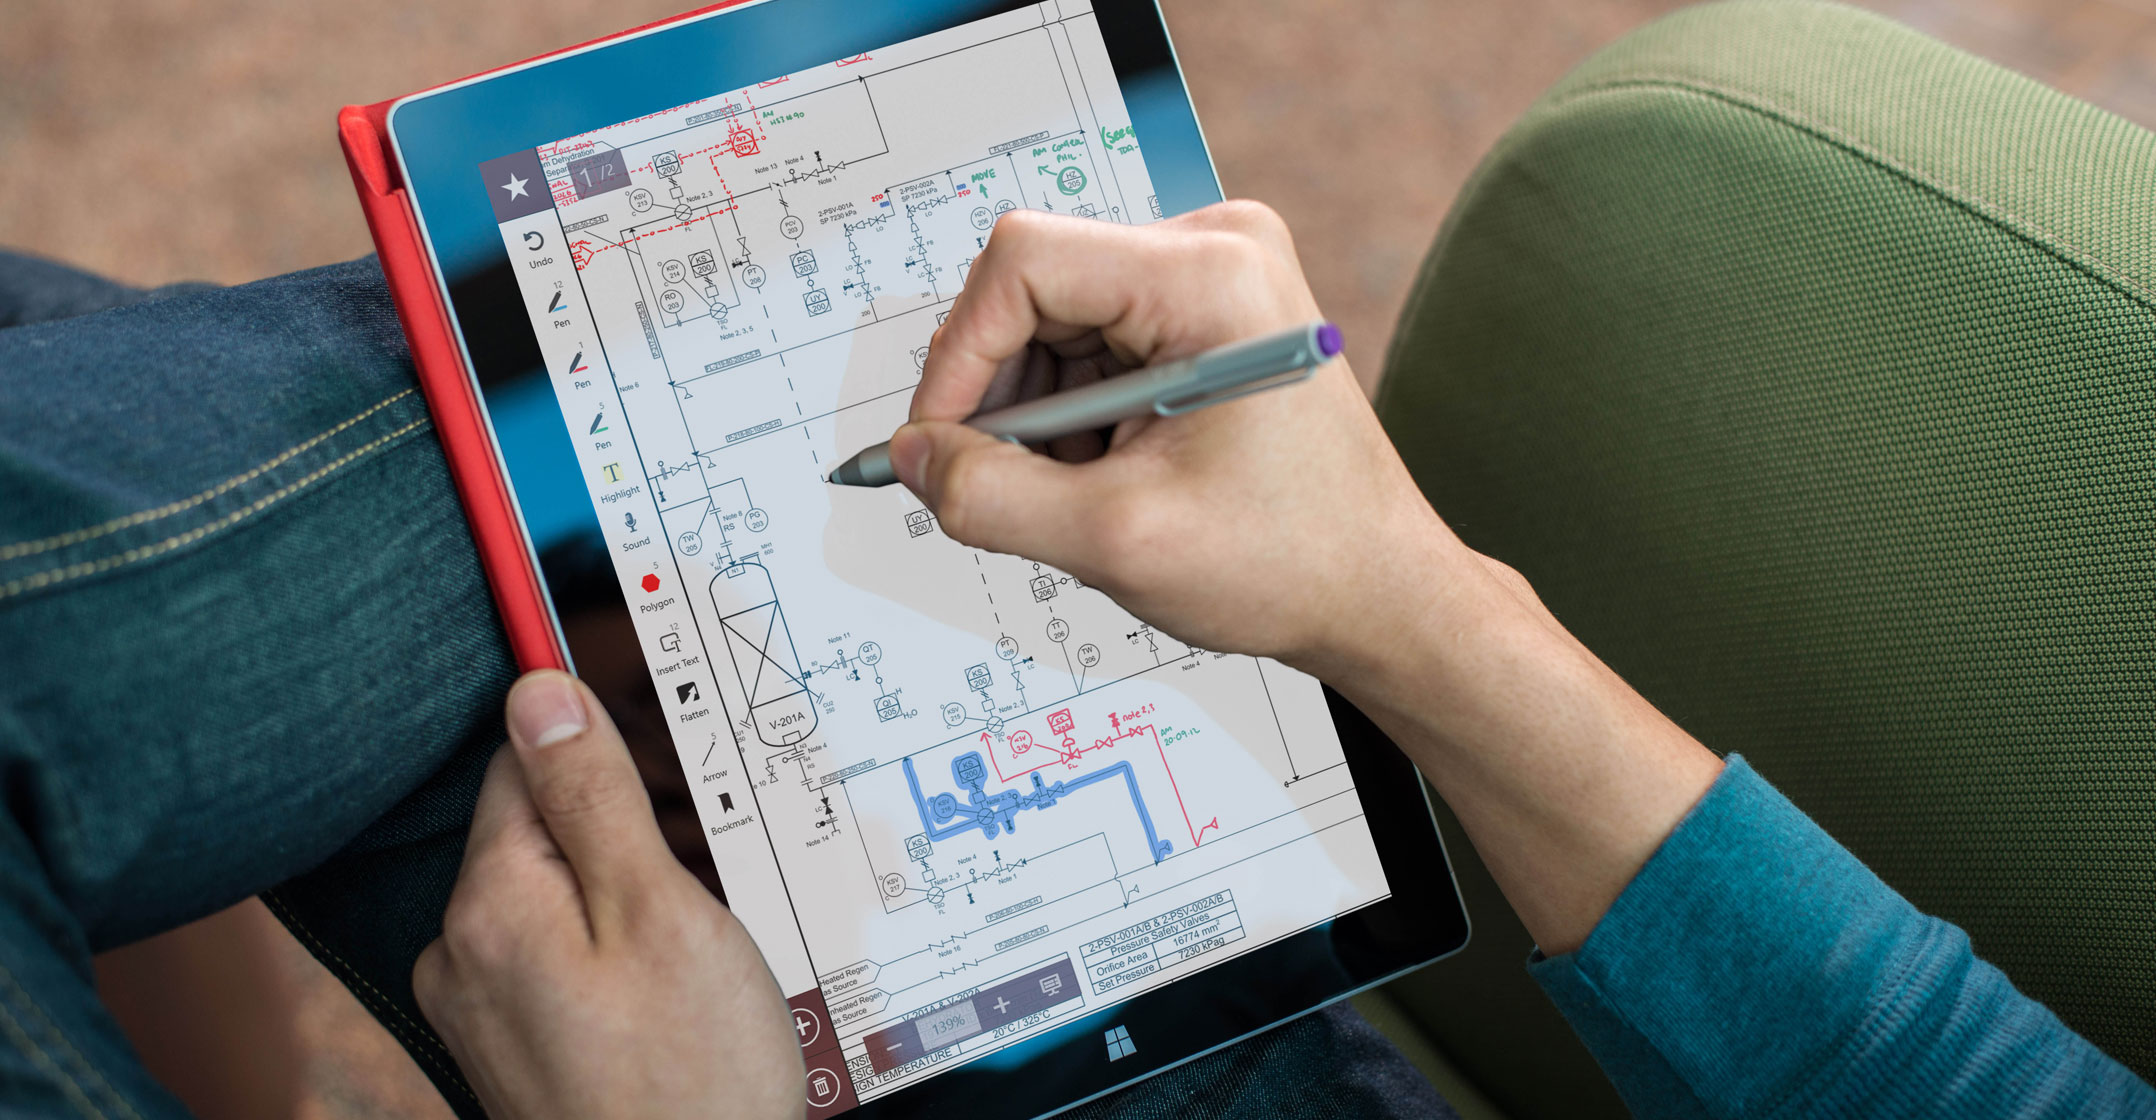 Microsoft may release a tiny $400 Surface tablet to challenge the iPad